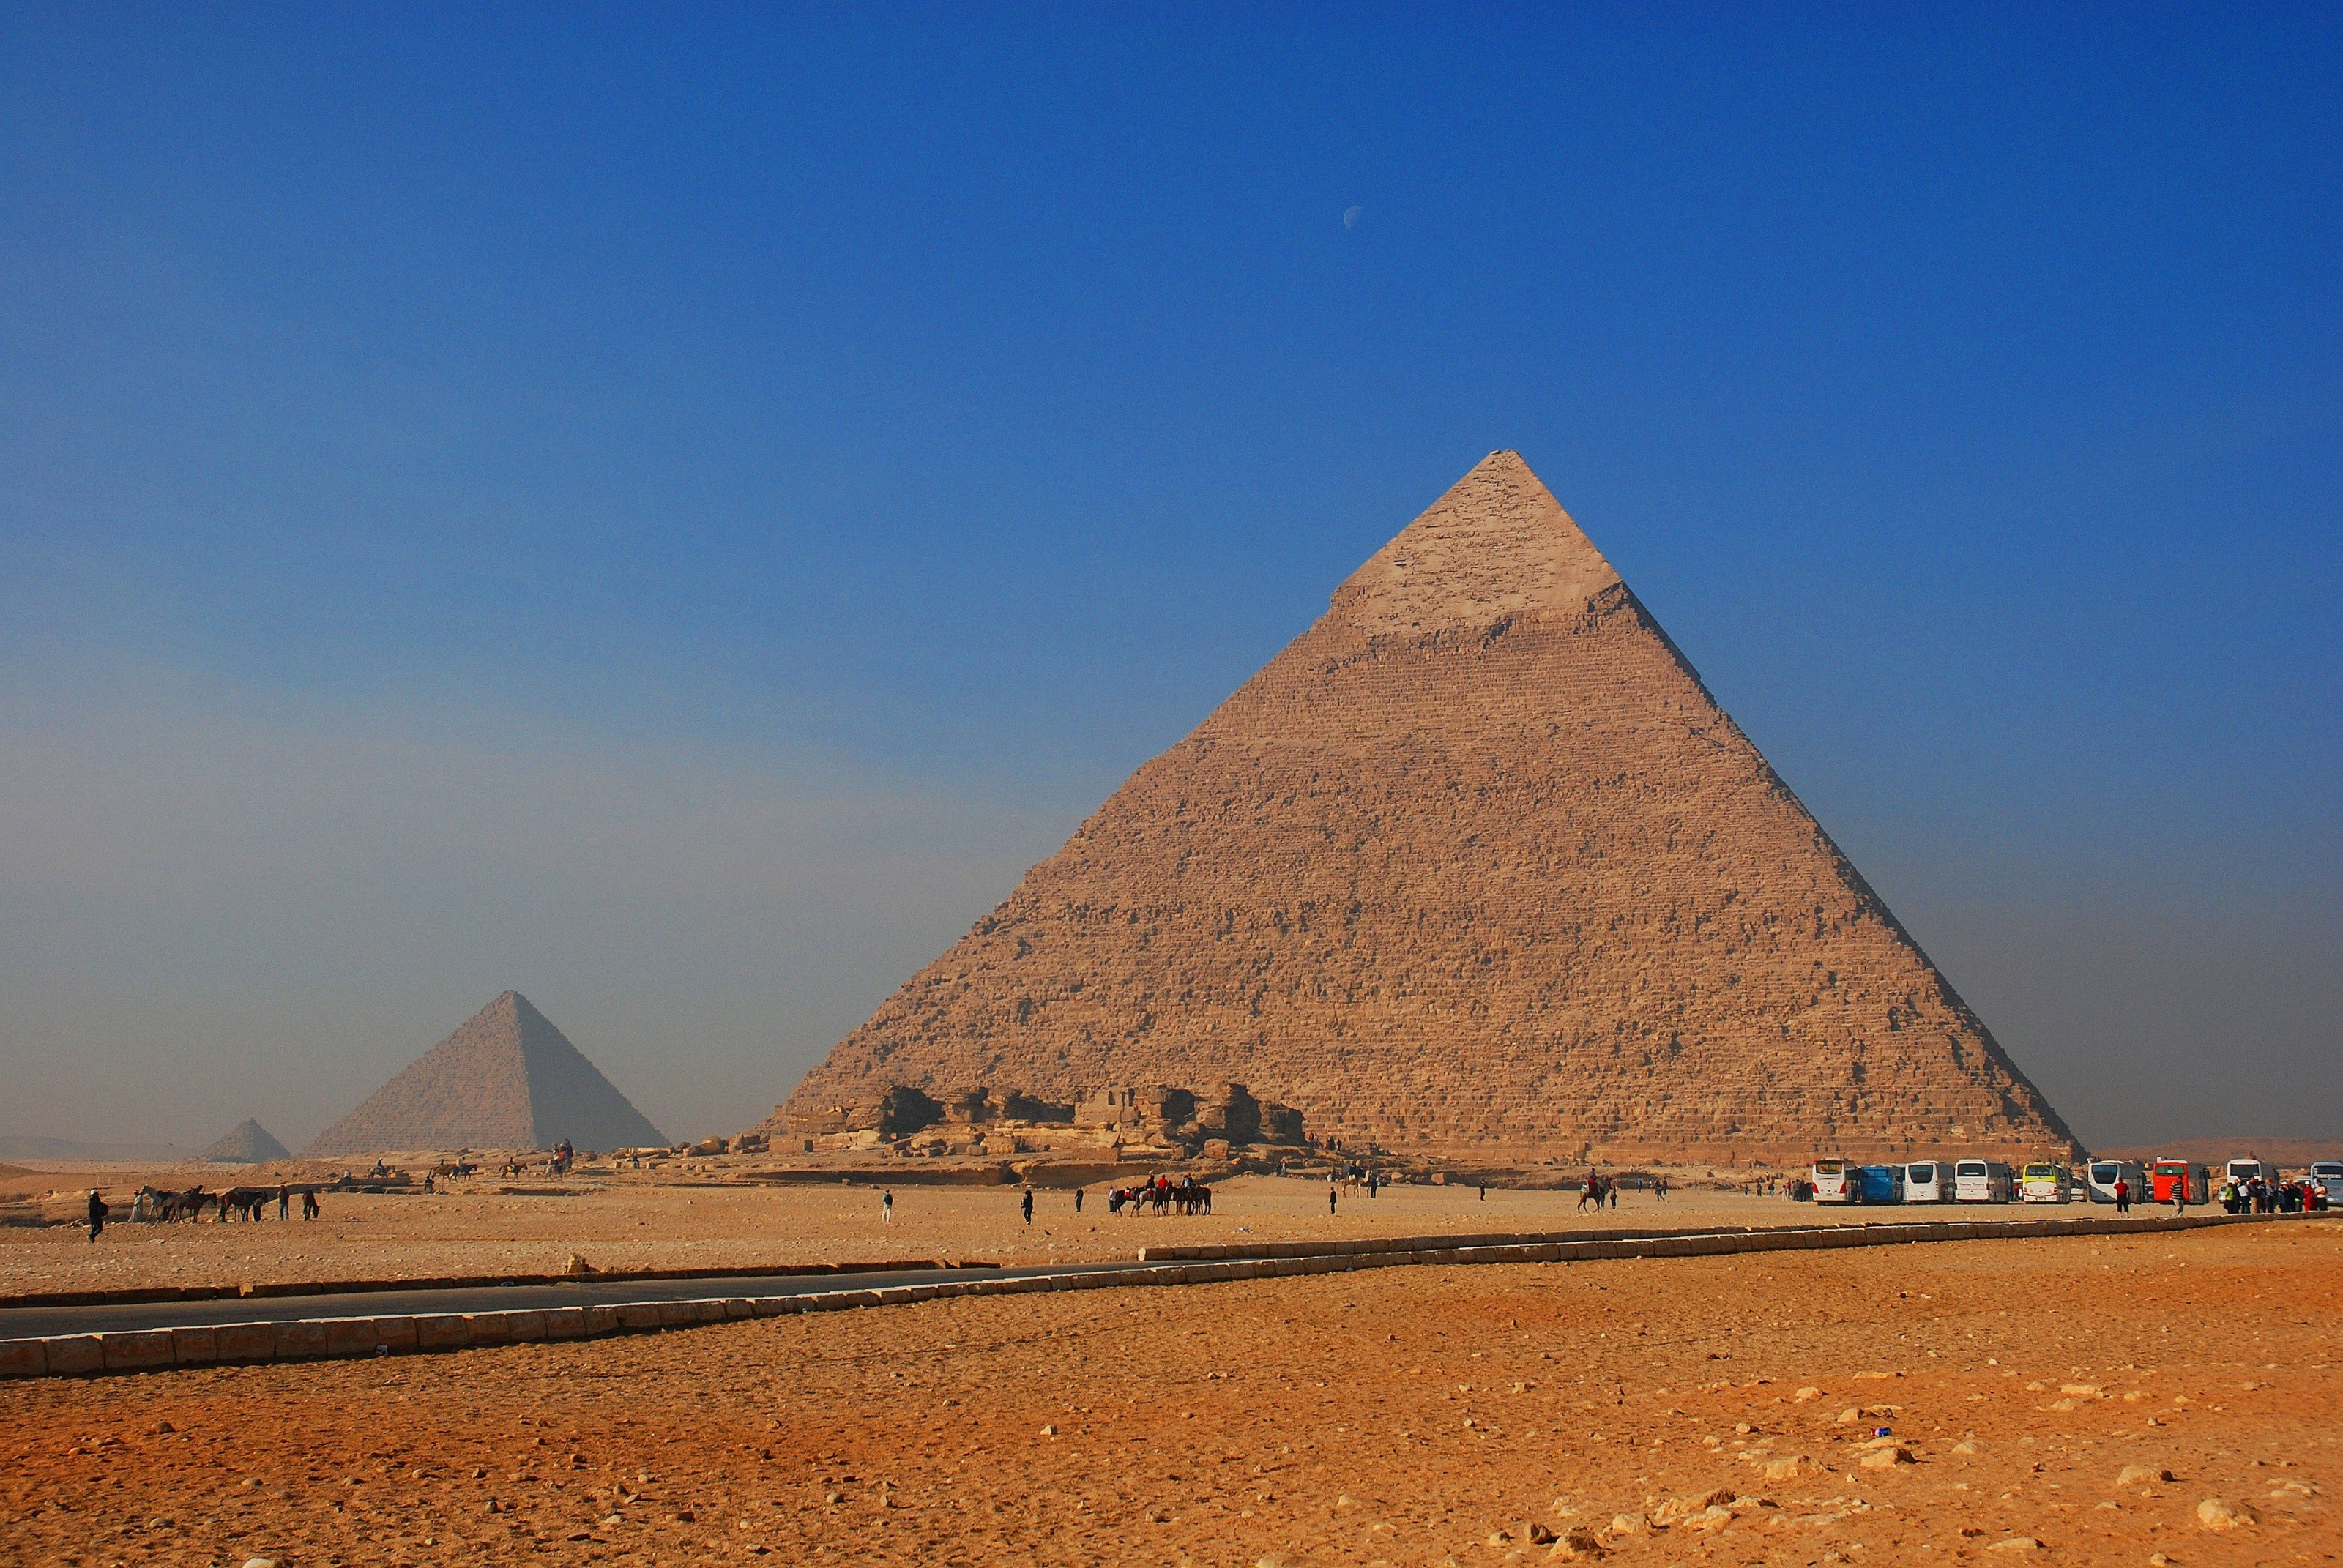 1544002675-8986-ology-pyramid-giving-cairo-3